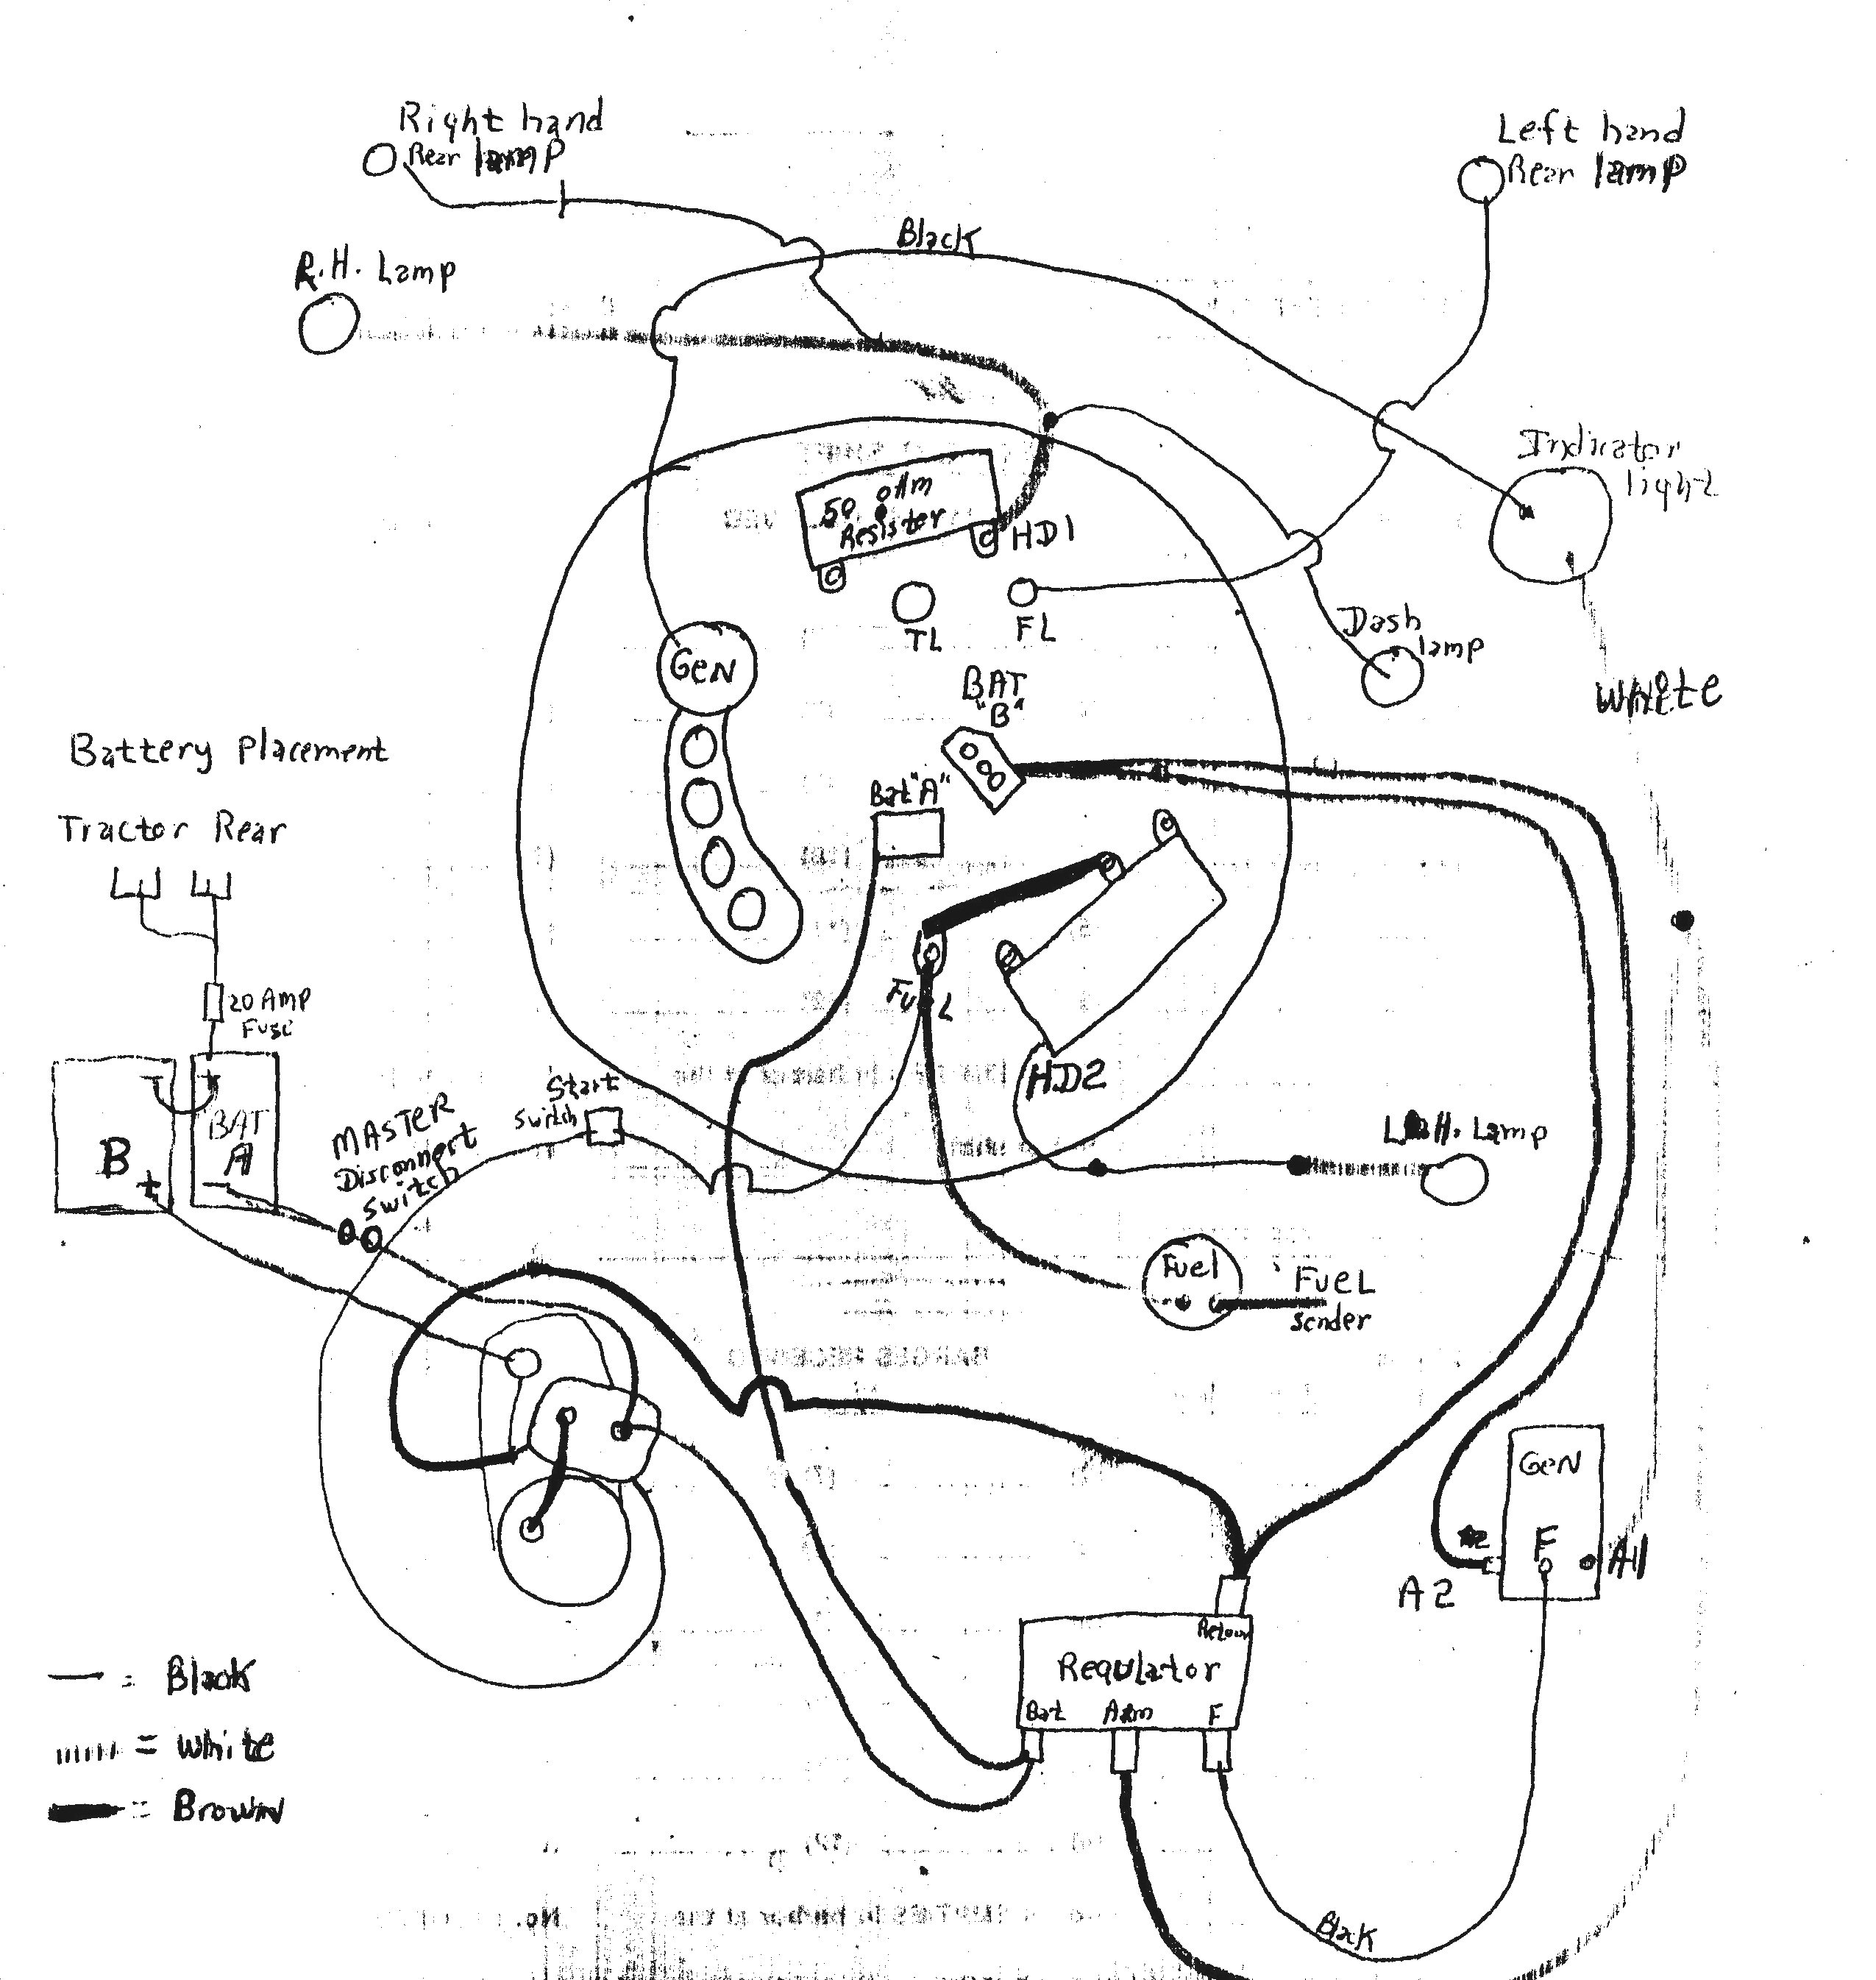 John Deere Tractor Solenoid Wiring Diagram in addition DM3i 7407 as well Simplex 4006 Wiring Diagram together with 2zw3v John Deere 318 Tractor Electrical Problem Engine besides T14396779 John deere stx 30 wiring harness. on john deere 4010 wiring diagram